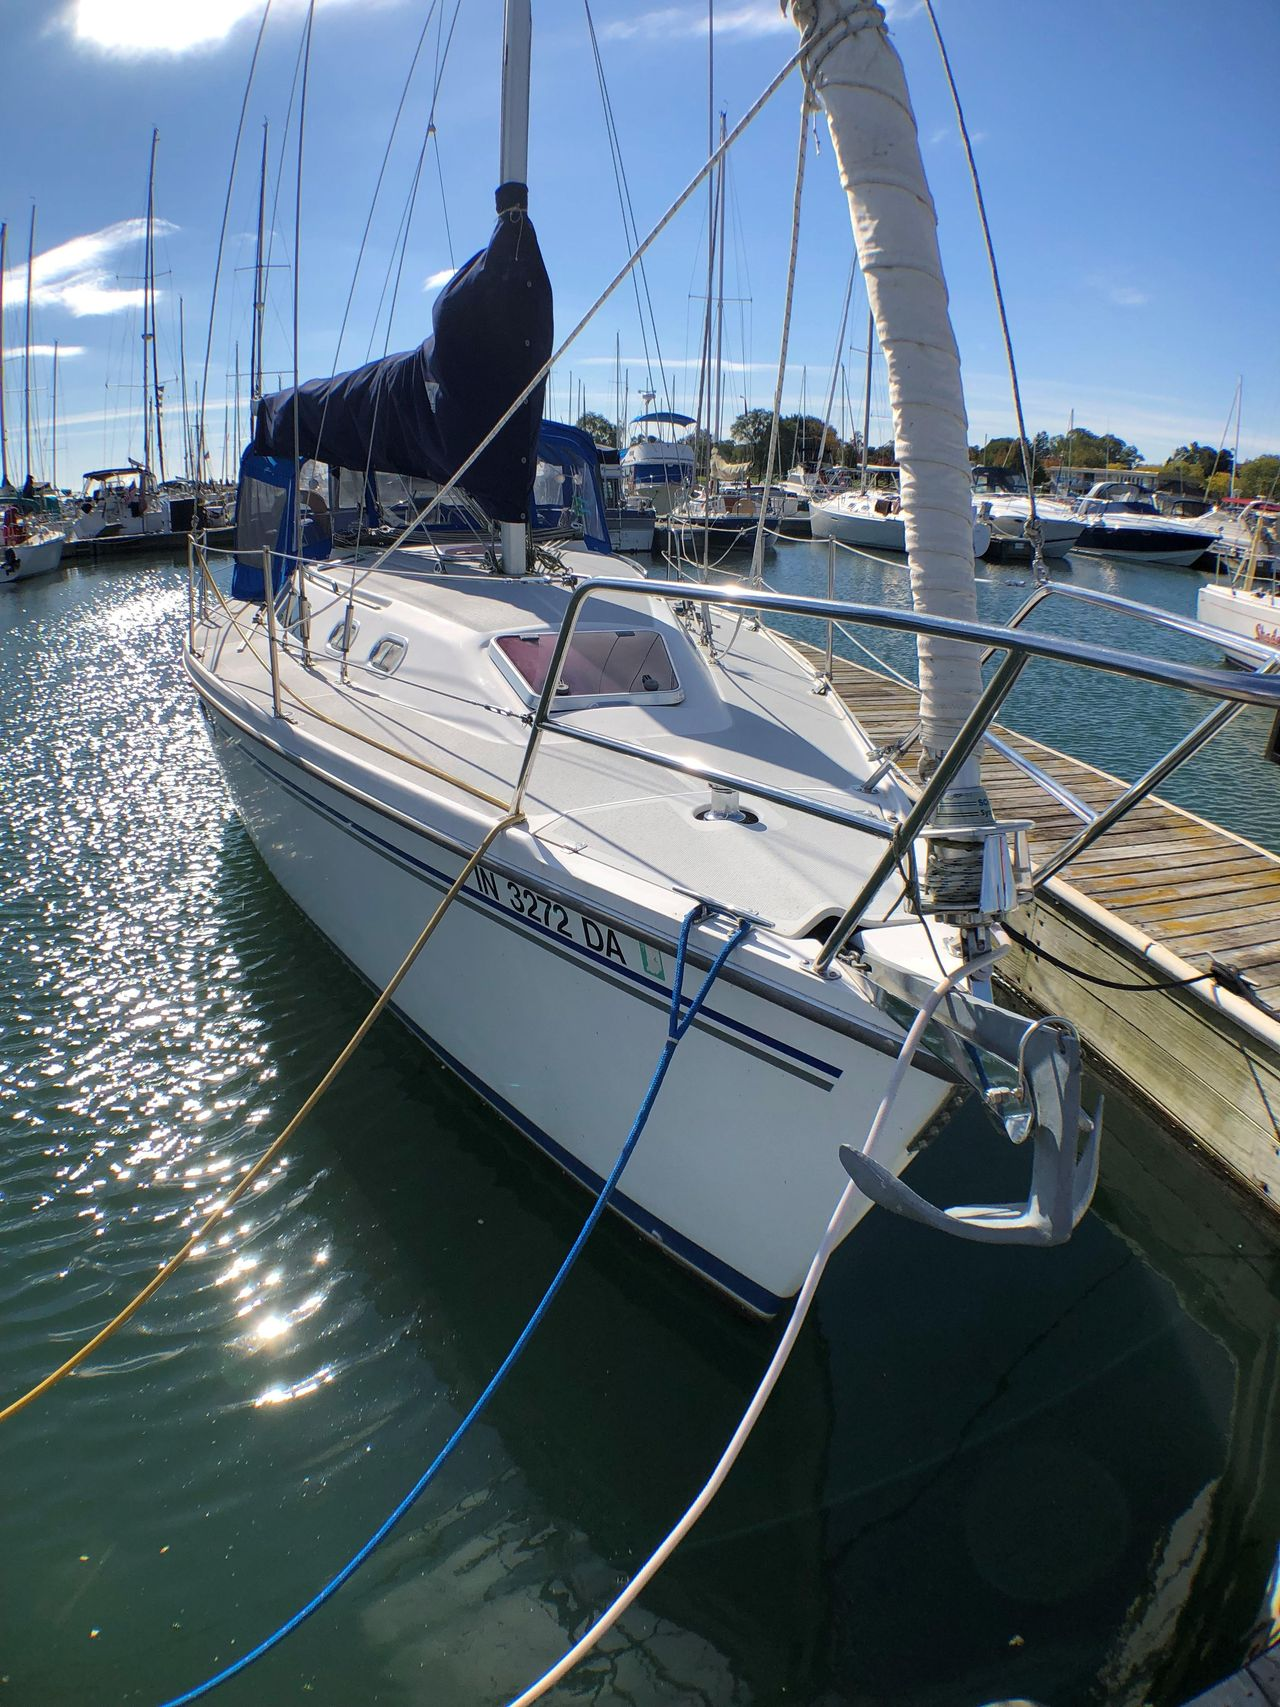 Catalina 320 Owners Manual 27 Wiring Diagram 2005 Used Racer And Cruiser Sailboat For Sale 85 900 Rh Moreboats Com Interior Drawing